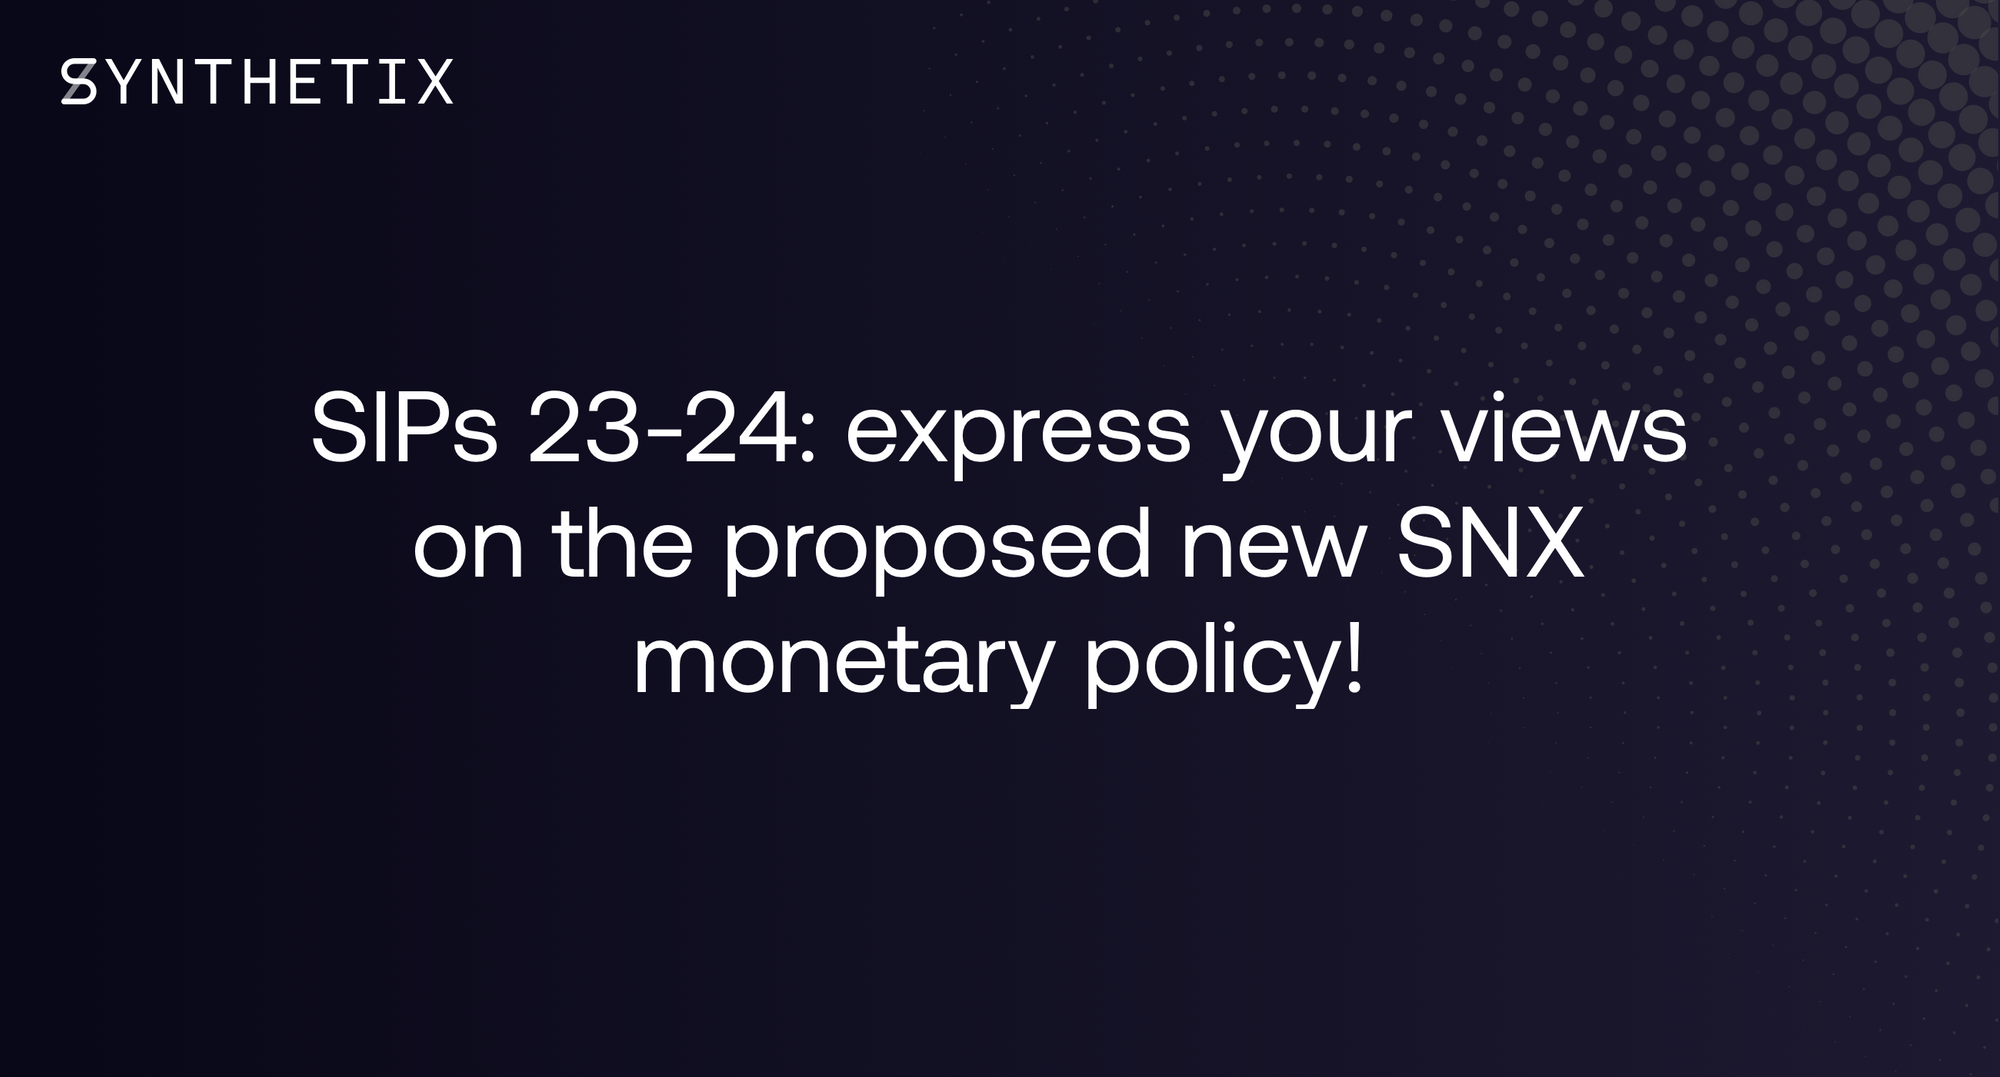 SIPs 23-24: express your views on the proposed new SNX monetary policy!